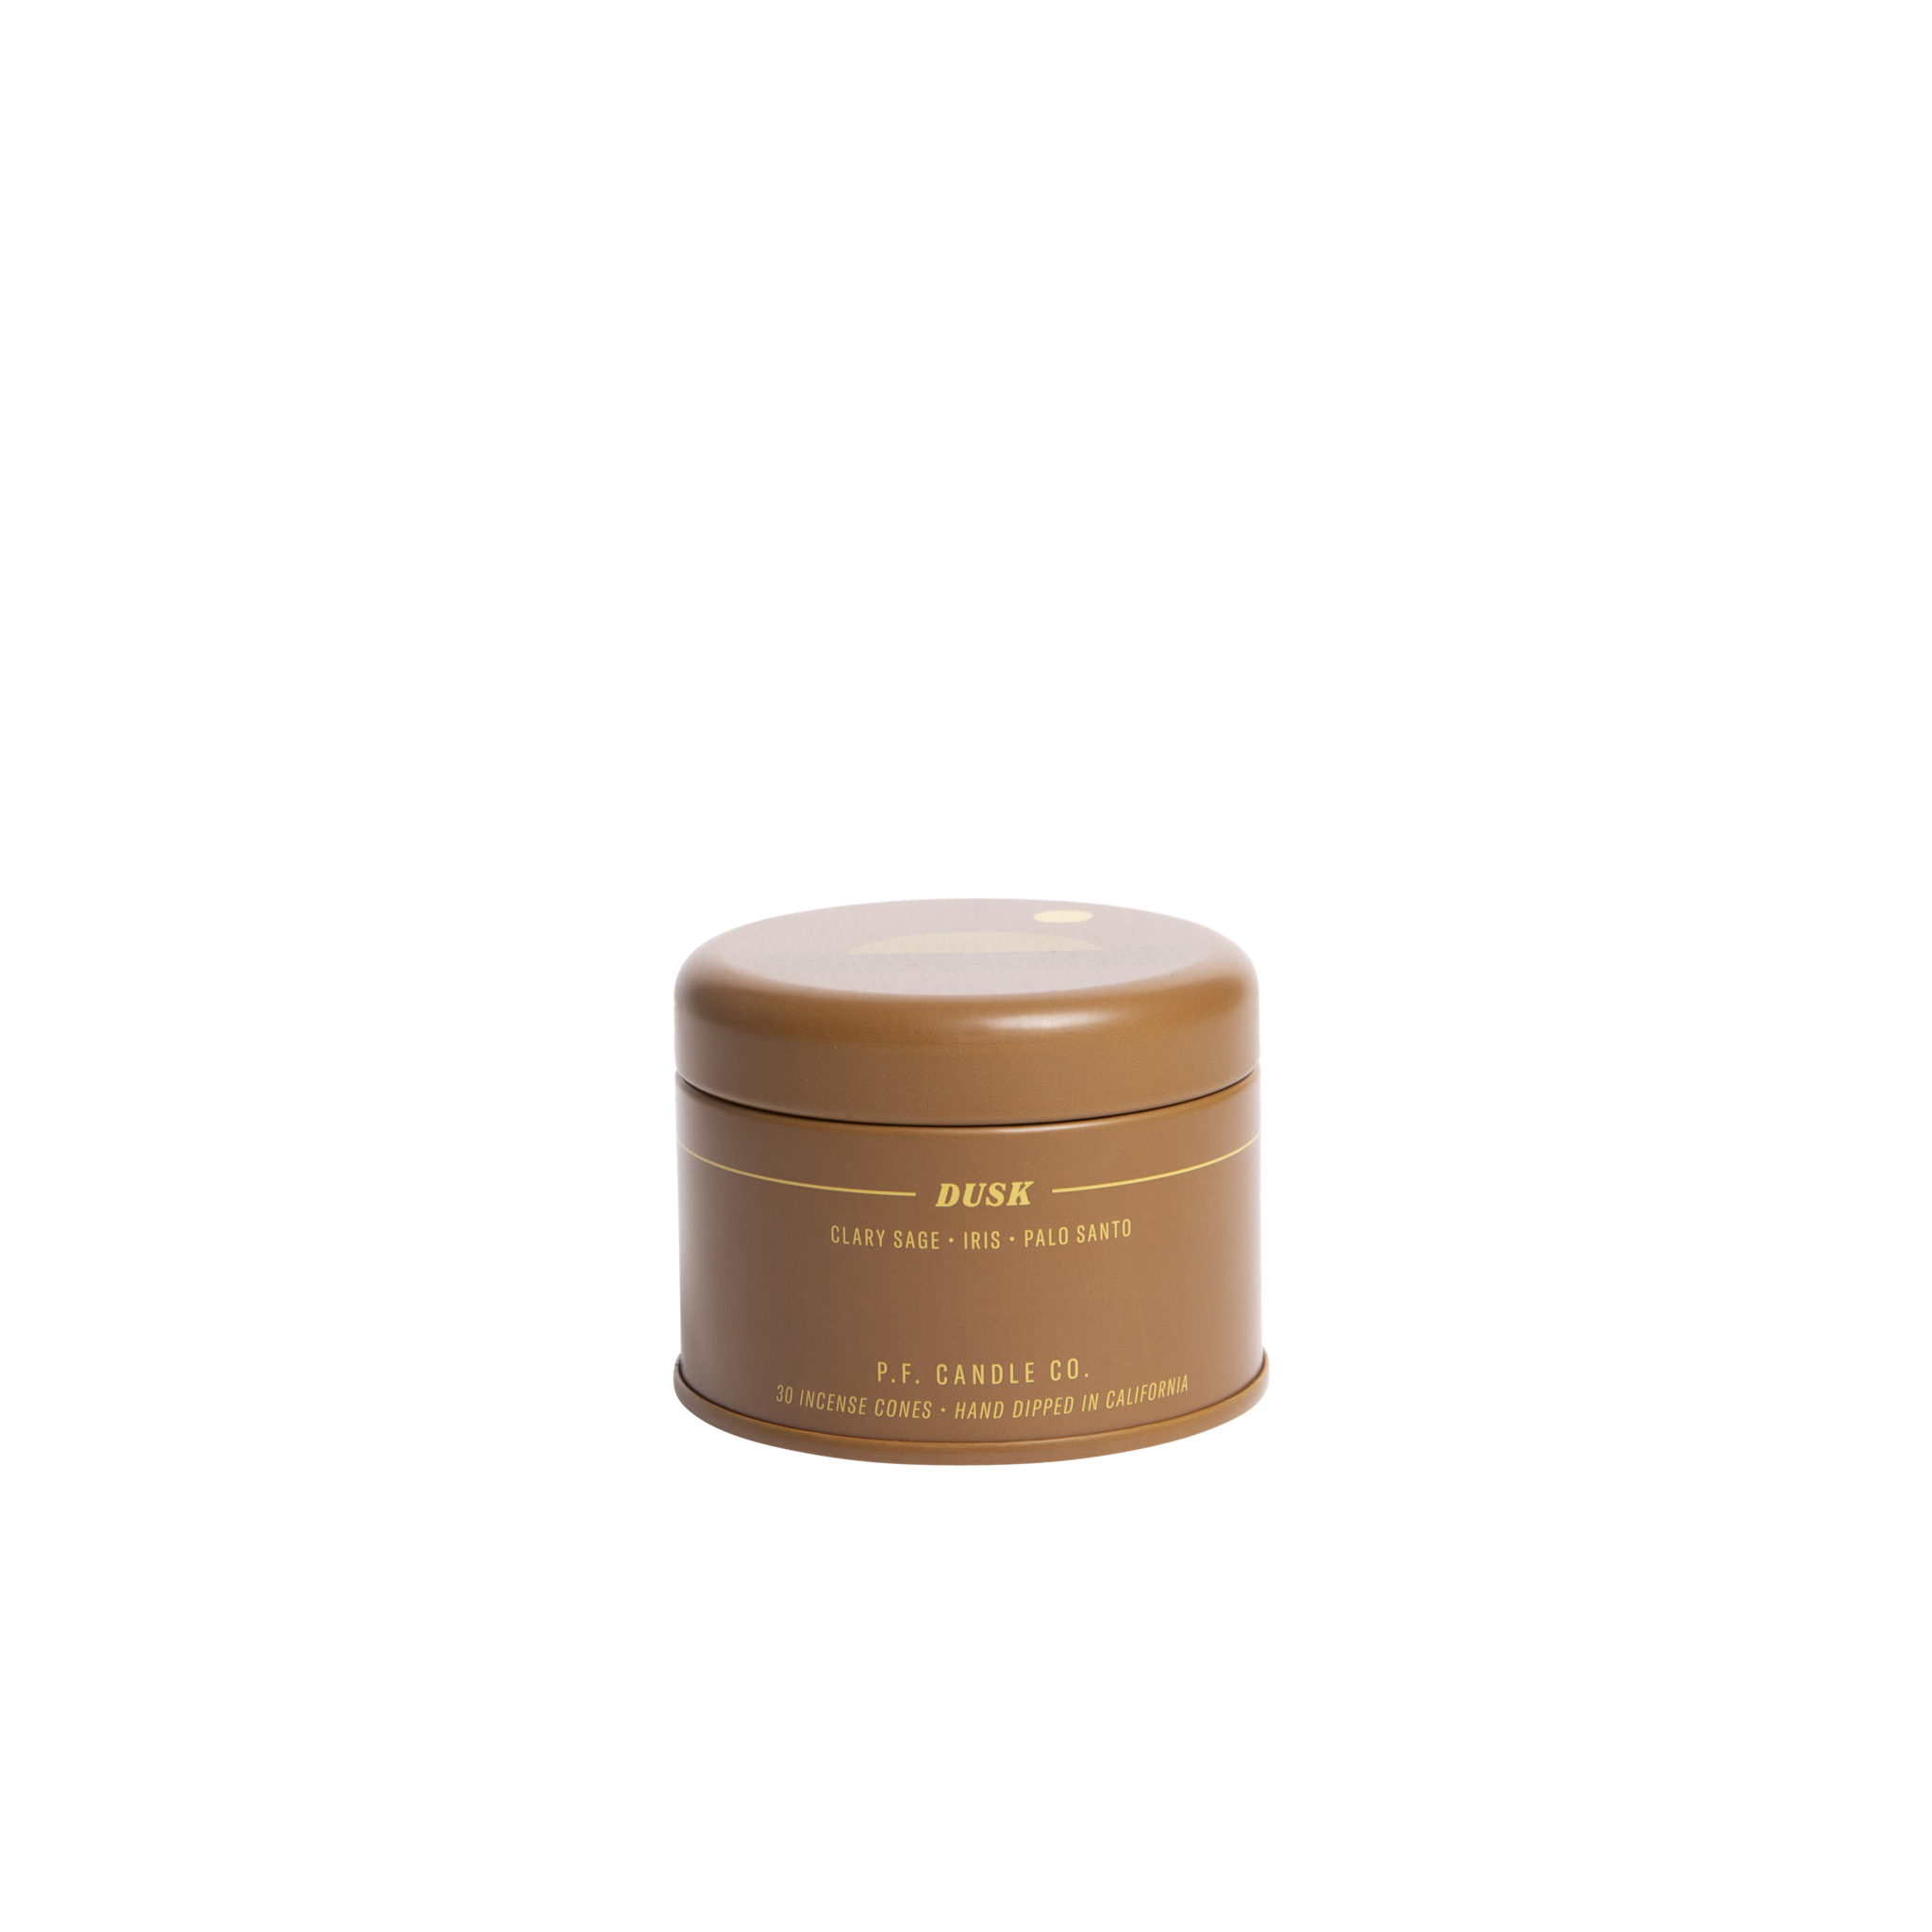 P. F. Candle Co. Sunset Collection Dusk Incense Cones